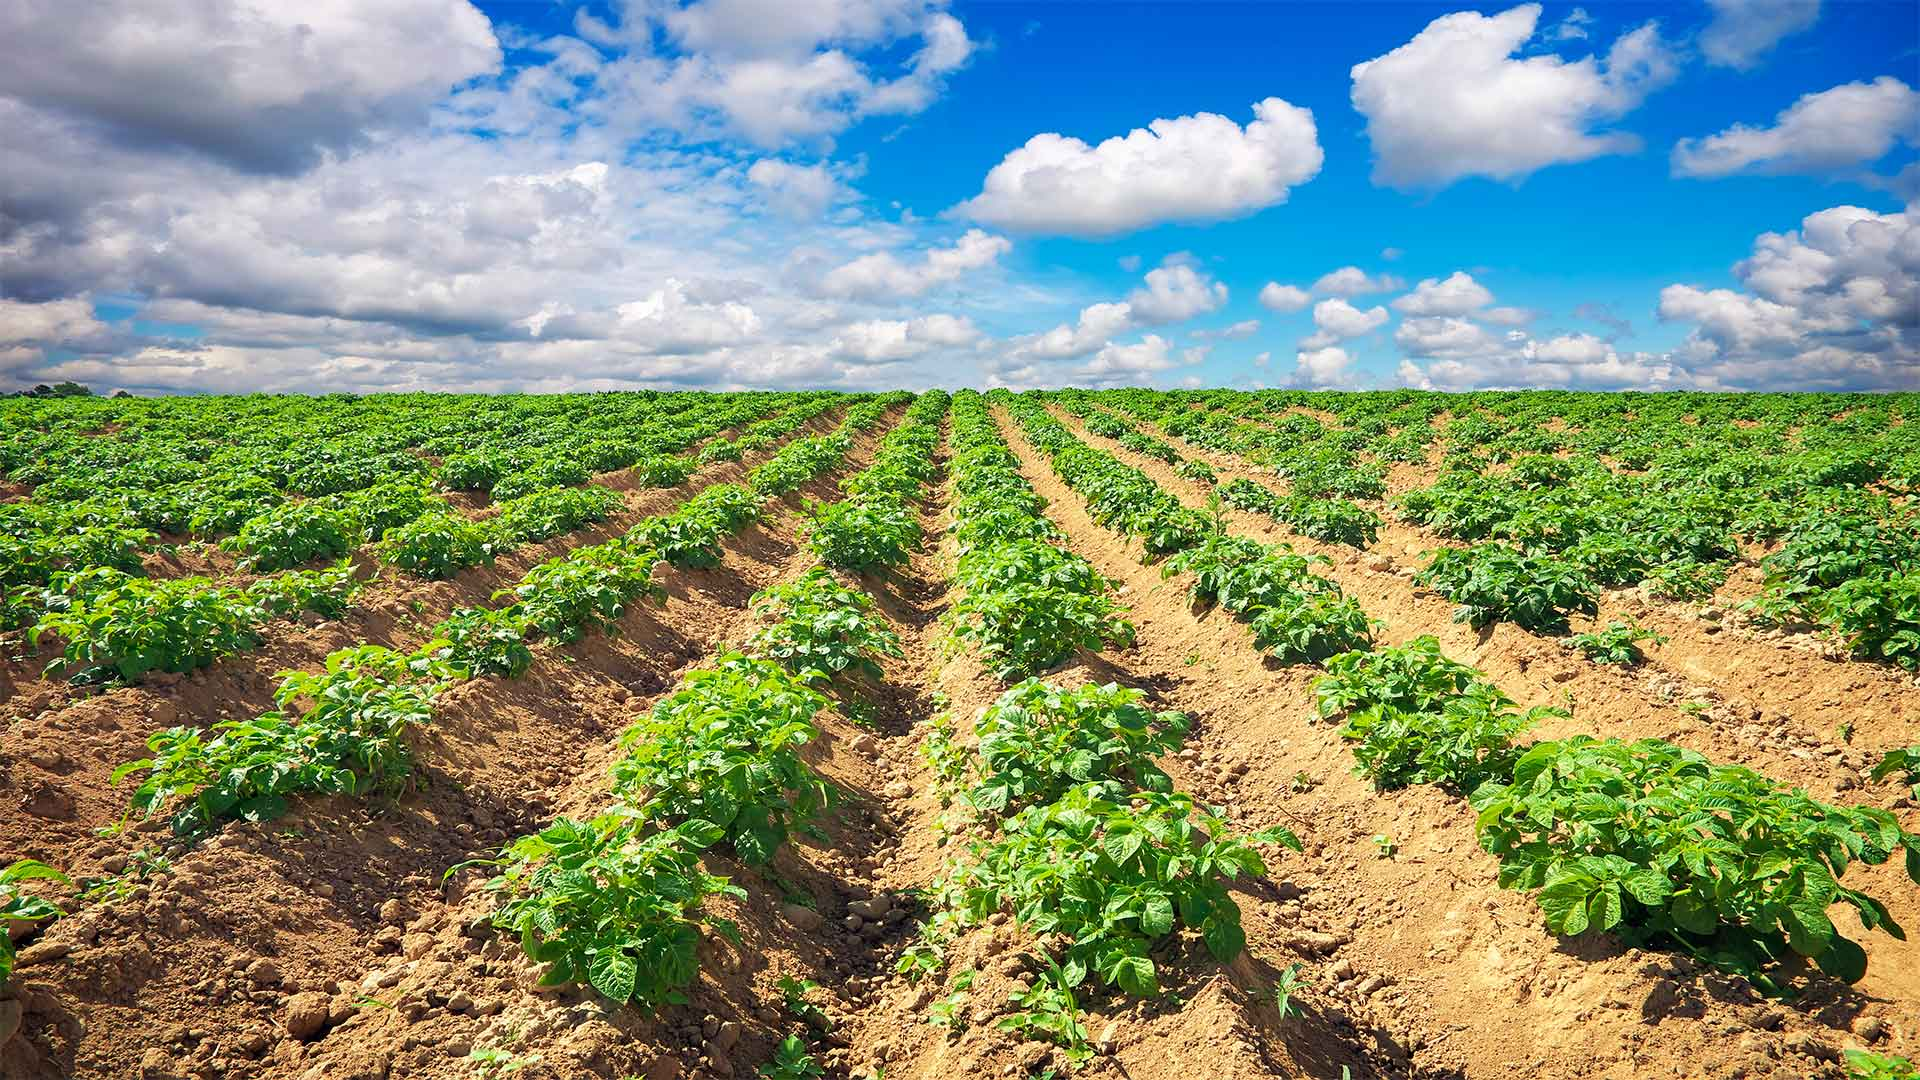 Boron and Borates Provide Stability for Food Security